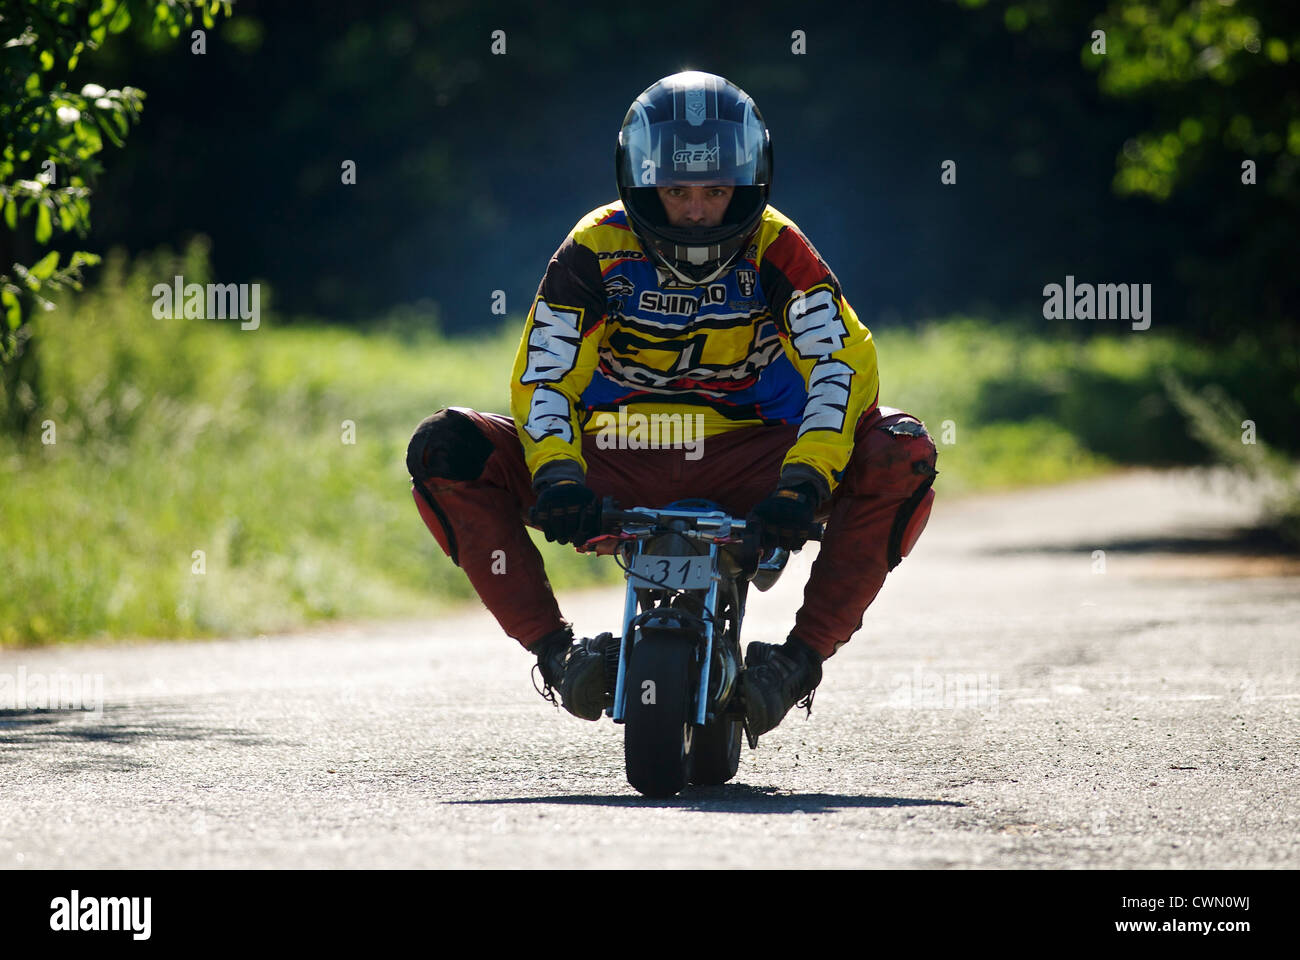 Rider on Minibike - Stock Image